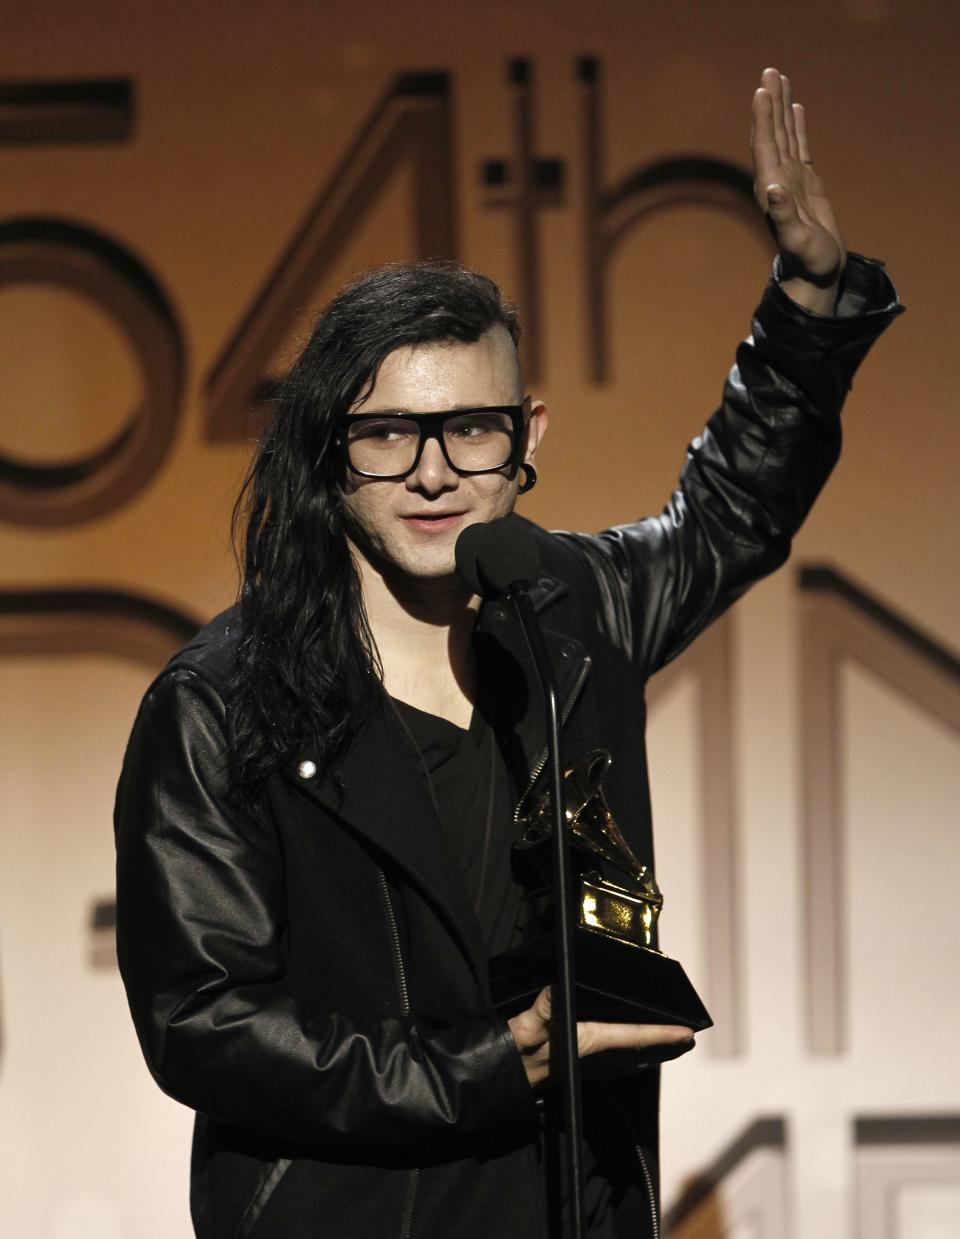 Skrillex accepts the award for best remixed recording non-classical, for Cinema, at the 54th annual GRAMMY Awards pre-show on Sunday, Feb. 12, 2012 in Los Angeles. (AP Photo/Matt Sayles)